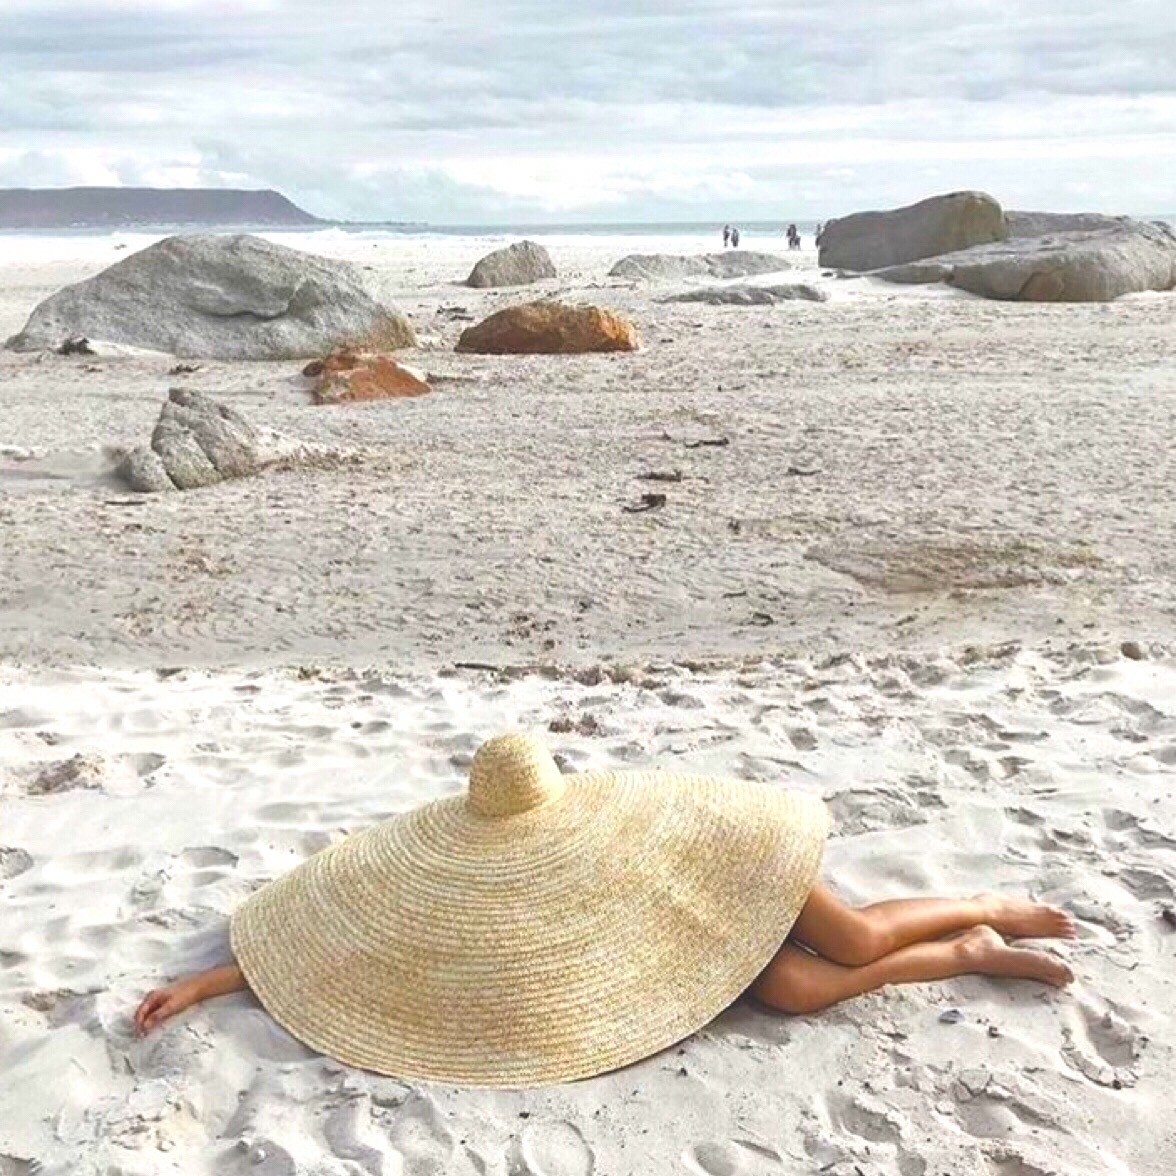 RT @SouthBSwim: And relax...✨☀️🌎  #beach #beachdays #ss20 #holiday #holidayinspo #southbeach https://t.co/Ze8g6Q7858